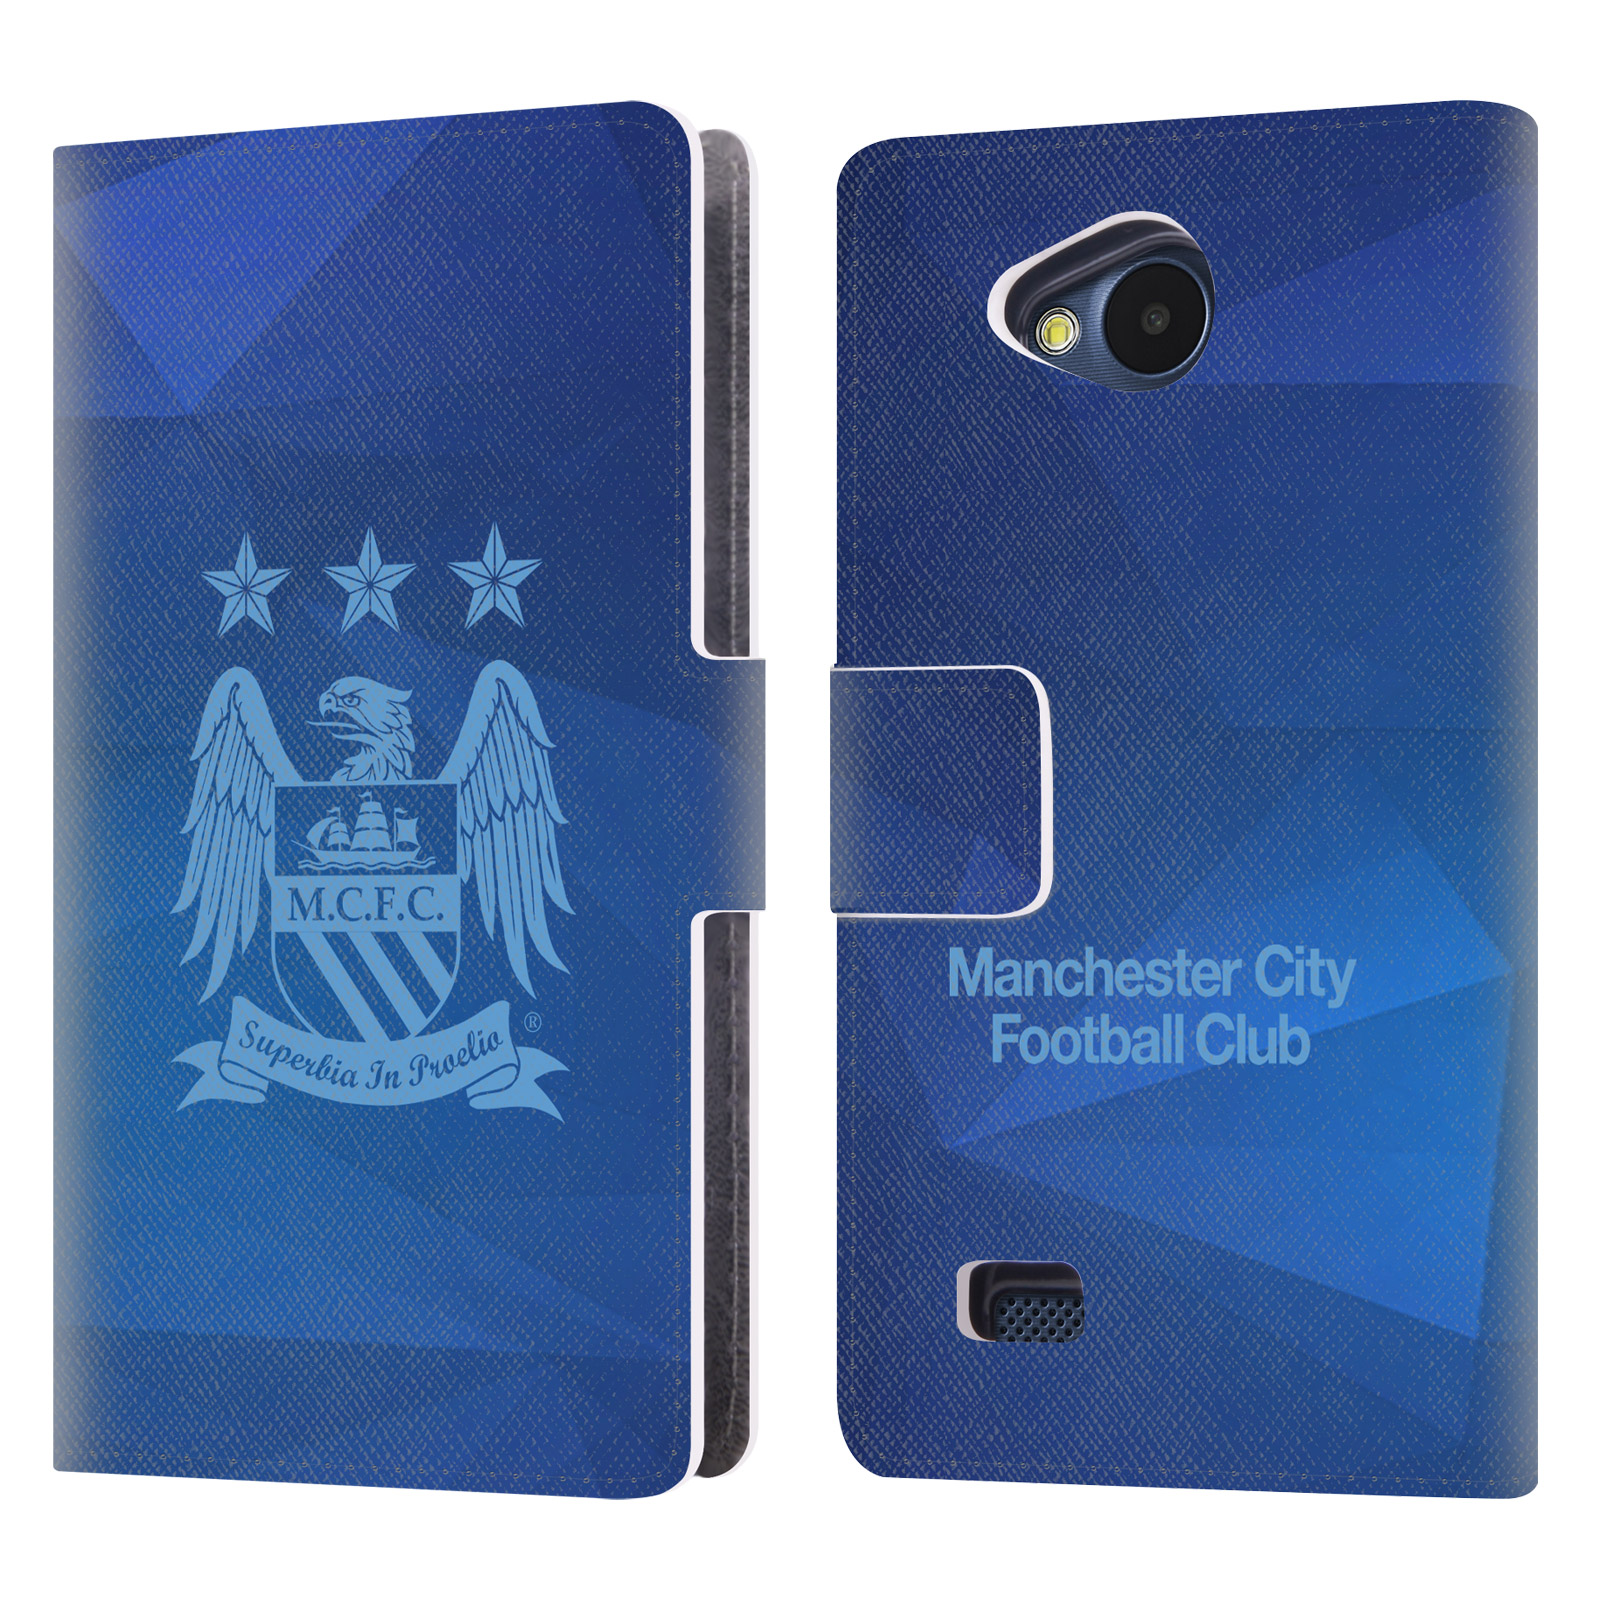 OFFICIAL MANCHESTER CITY MAN CITY FC CREST GEOMETRIC LEATHER BOOK WALLET CASE COVER FOR LG PHONES 2